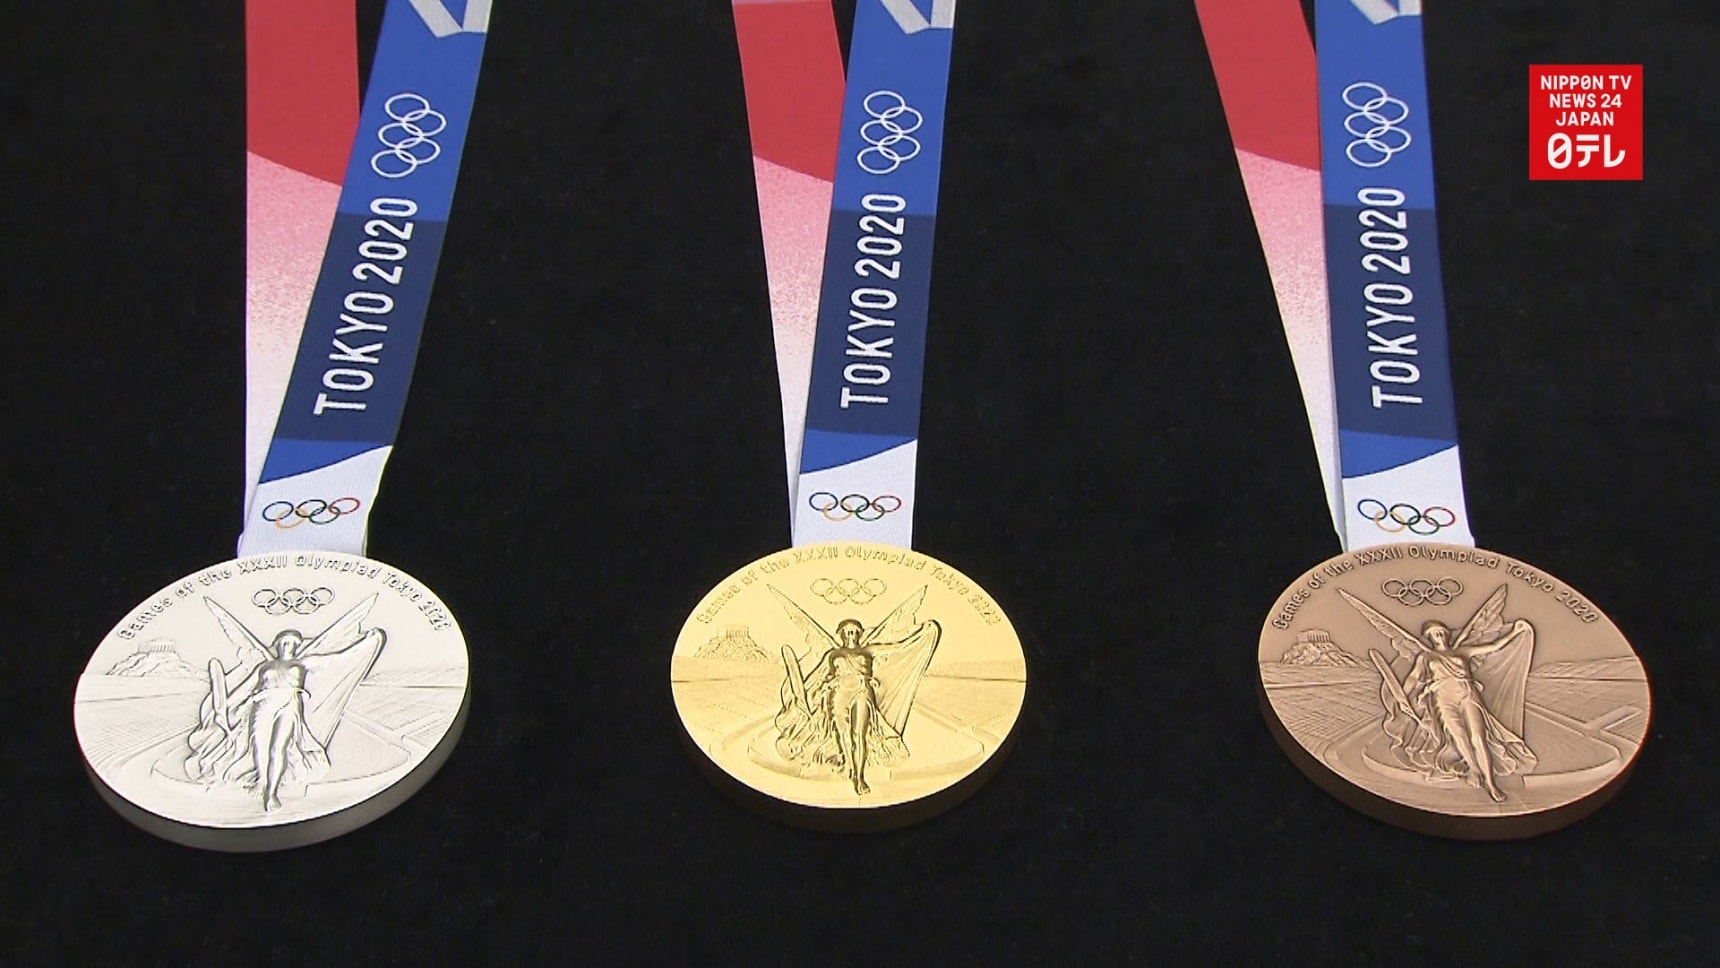 Tokyo Olympic Medals & Countdown Clock Reveal